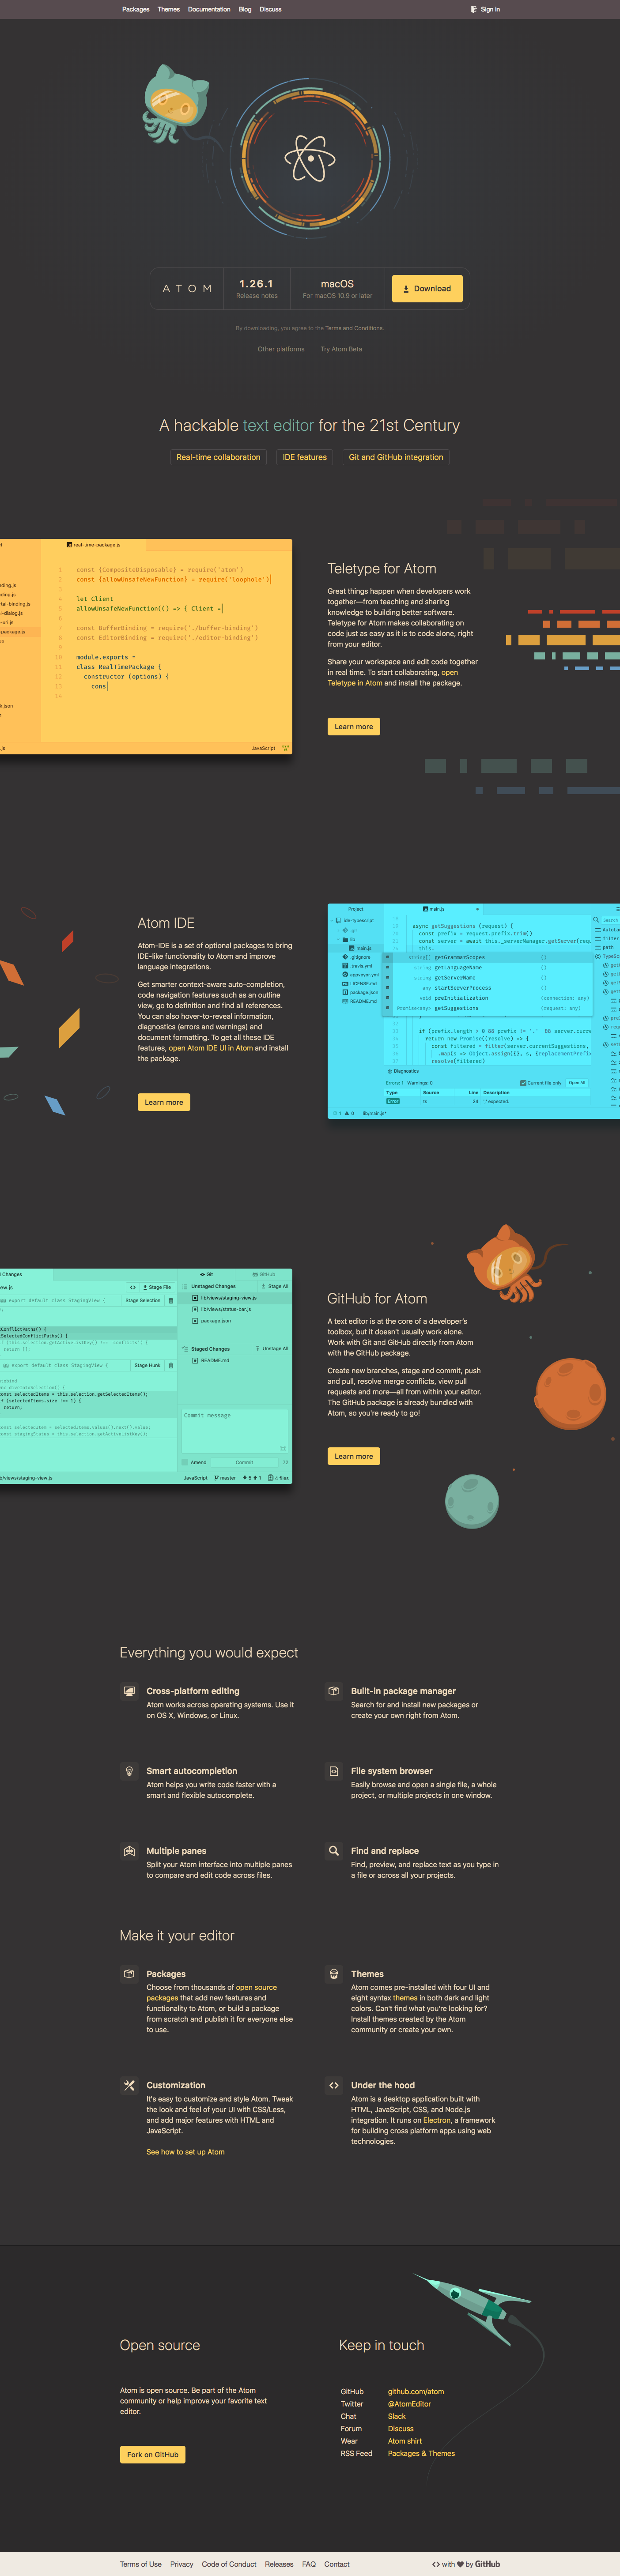 GitHub / Projects / Atom | Dribbble